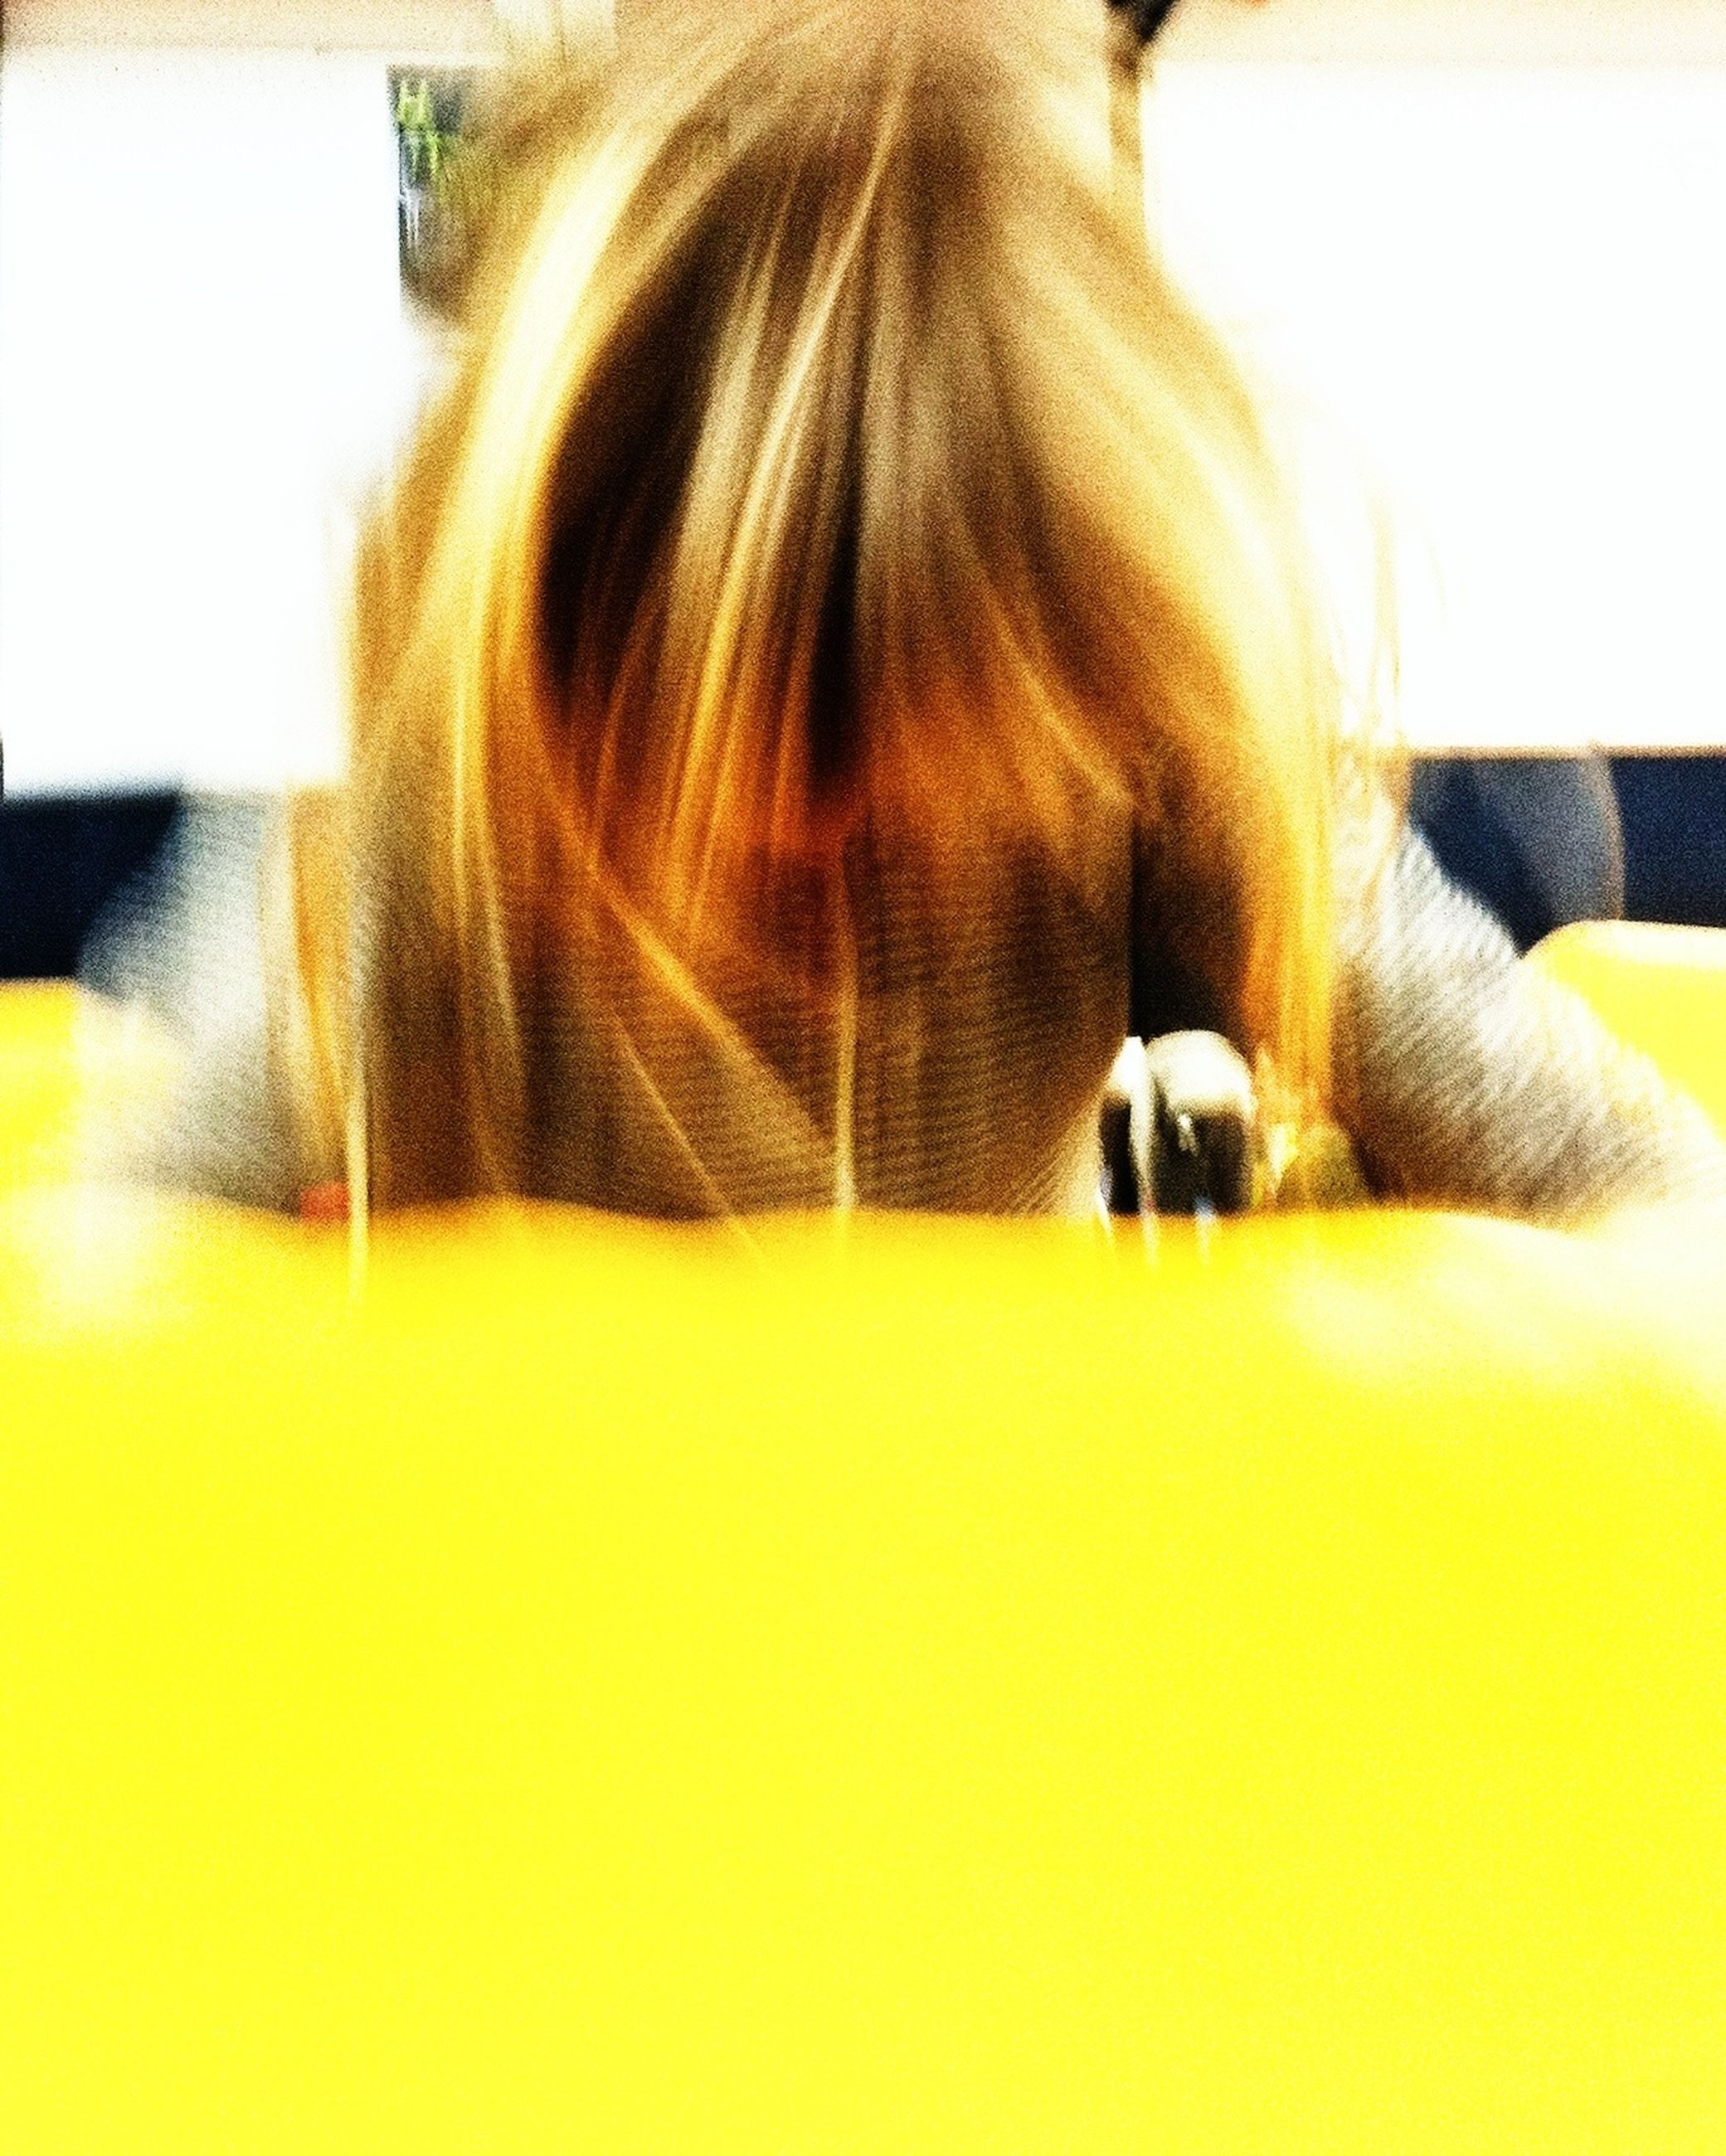 indoors, yellow, domestic animals, long hair, pets, rear view, relaxation, close-up, home interior, side view, blond hair, animal hair, one animal, human hair, copy space, brown hair, mammal, person